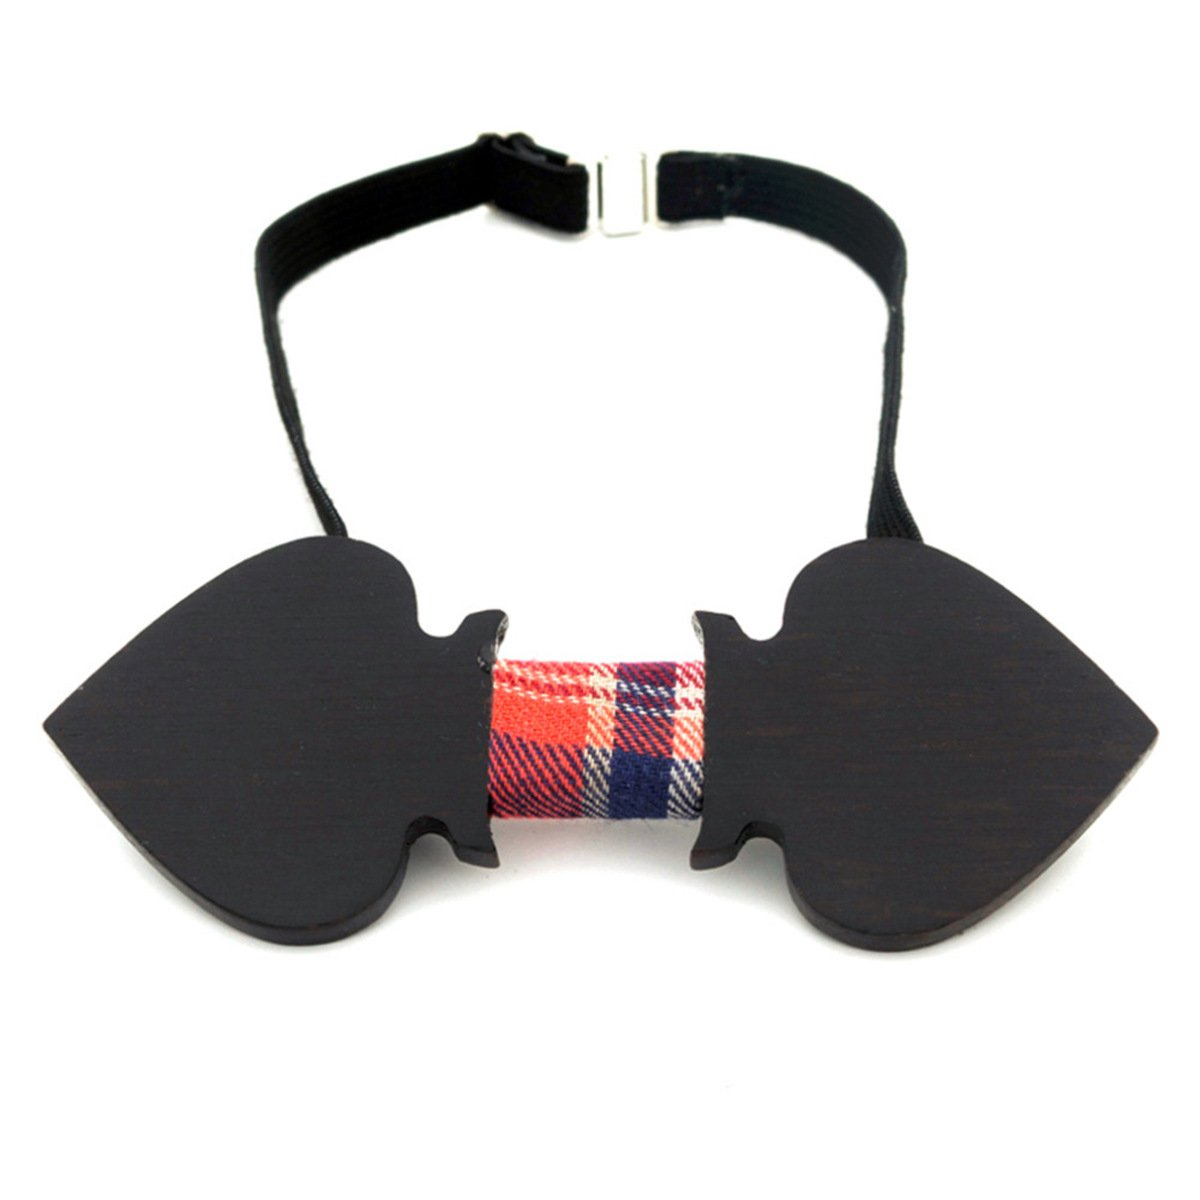 Men Women Retro Spade Shaped Handmade Wood Business Bowtie Tie Neck,Black